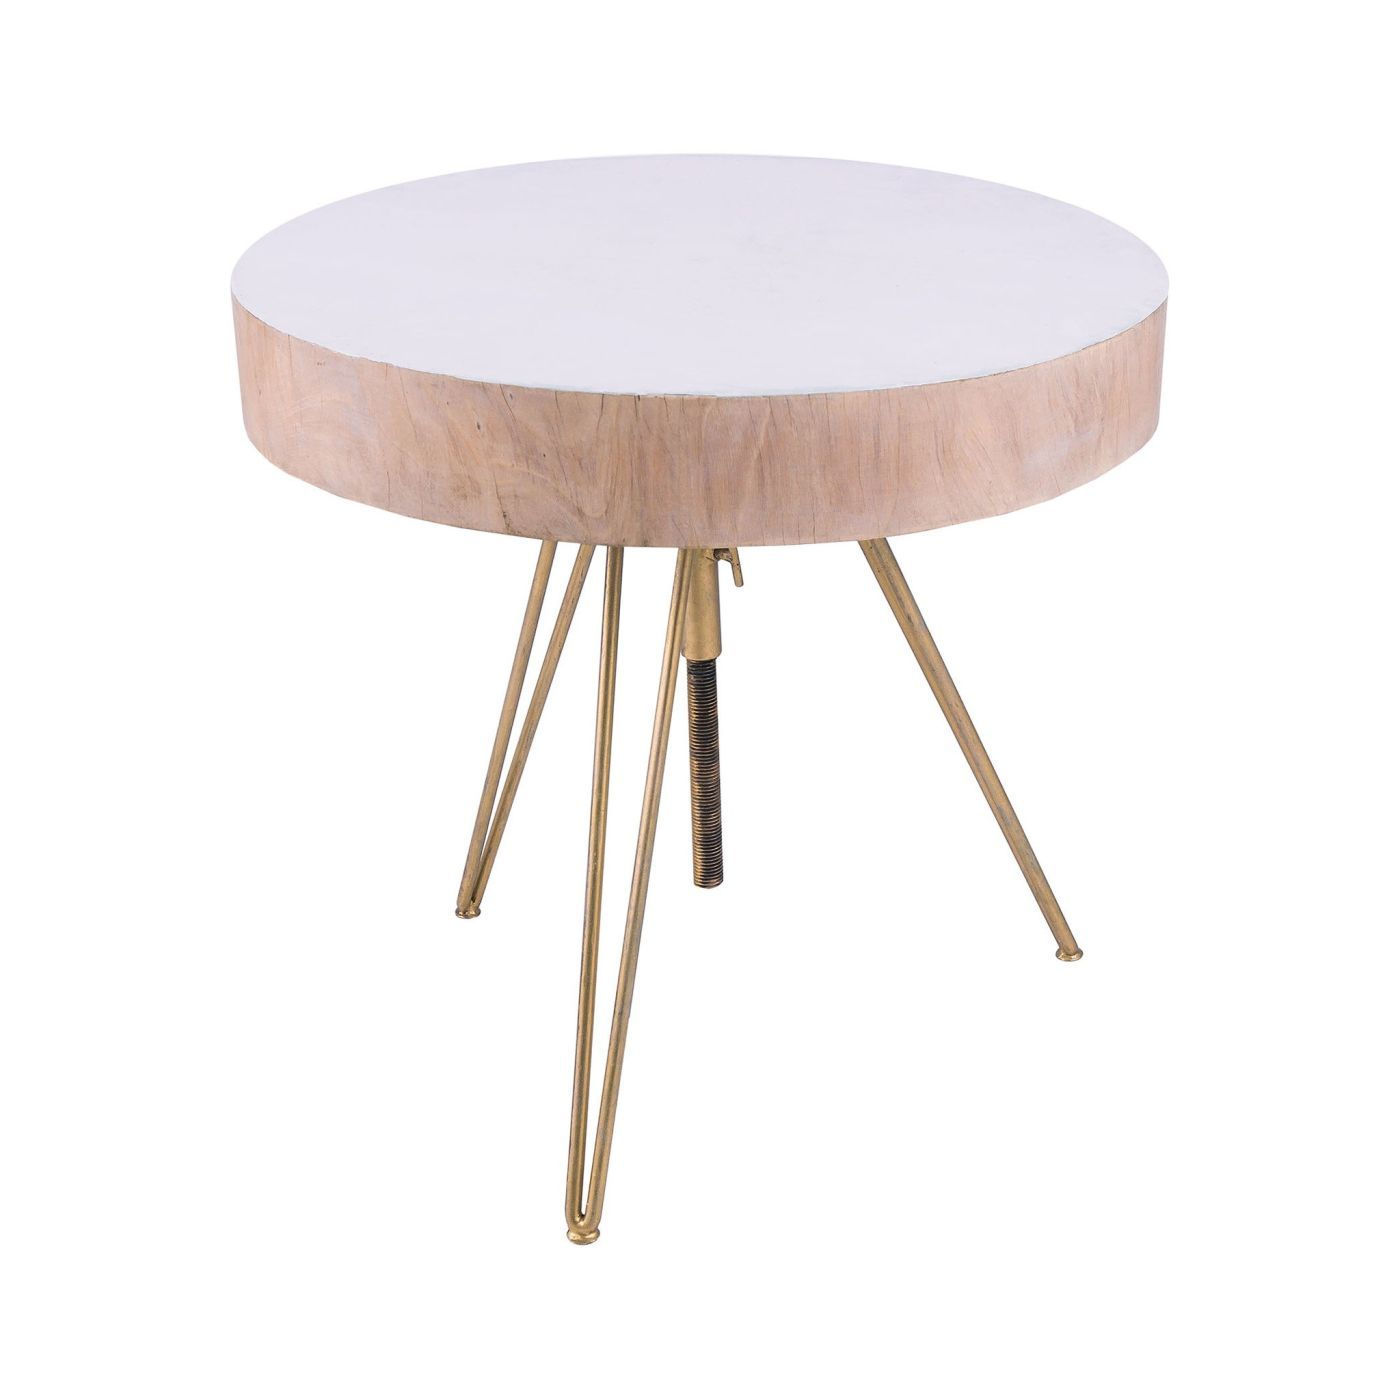 elk group biarritz suar wood accent table with gold side tables metal legs whitegold white patio sectional beach cherry end drawer home accessories acrylic sofa for small space